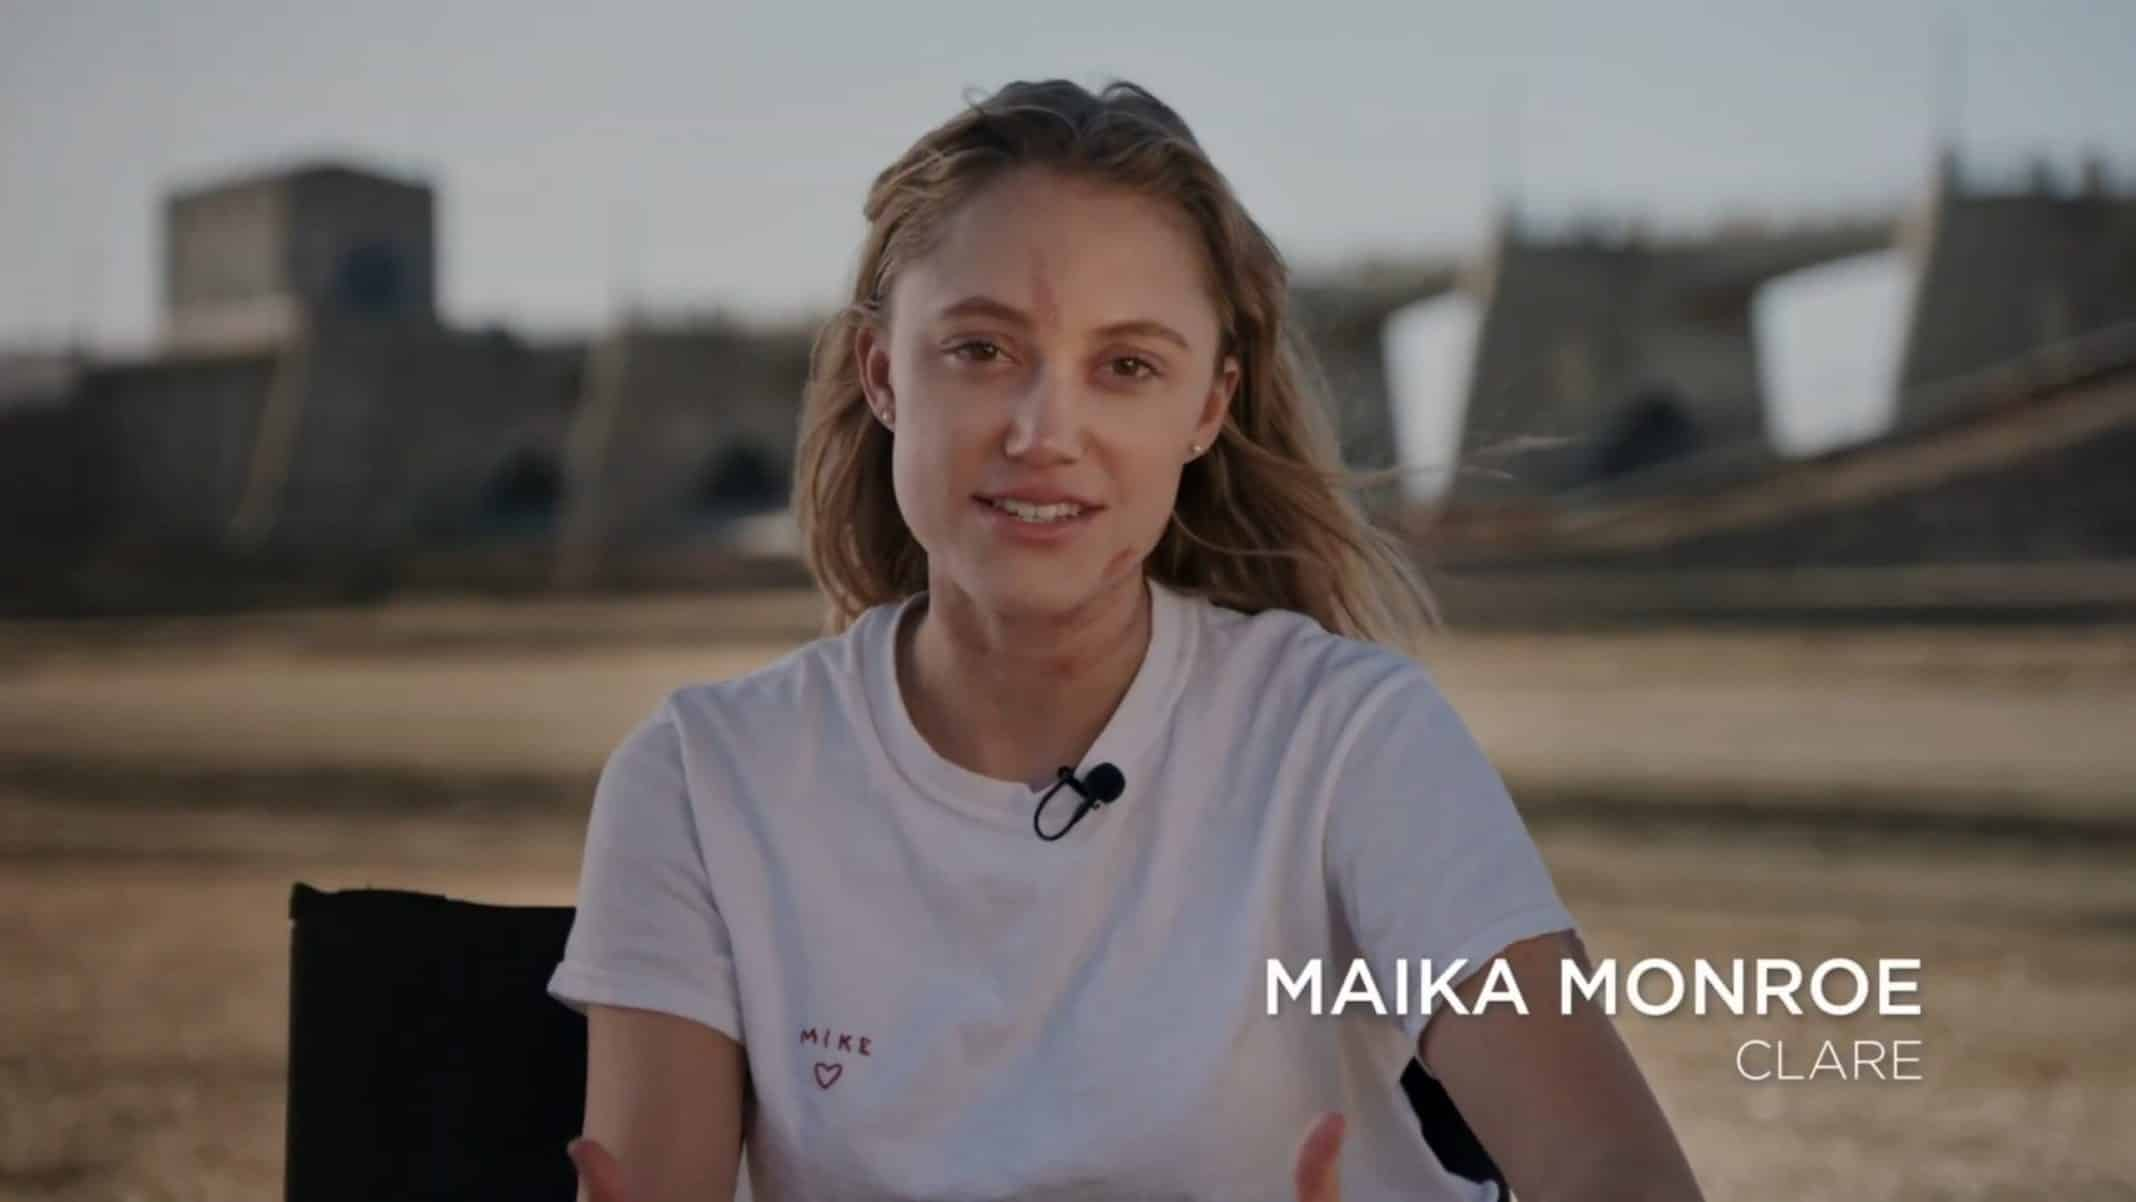 Clare (Maika Monroe) doing a interview